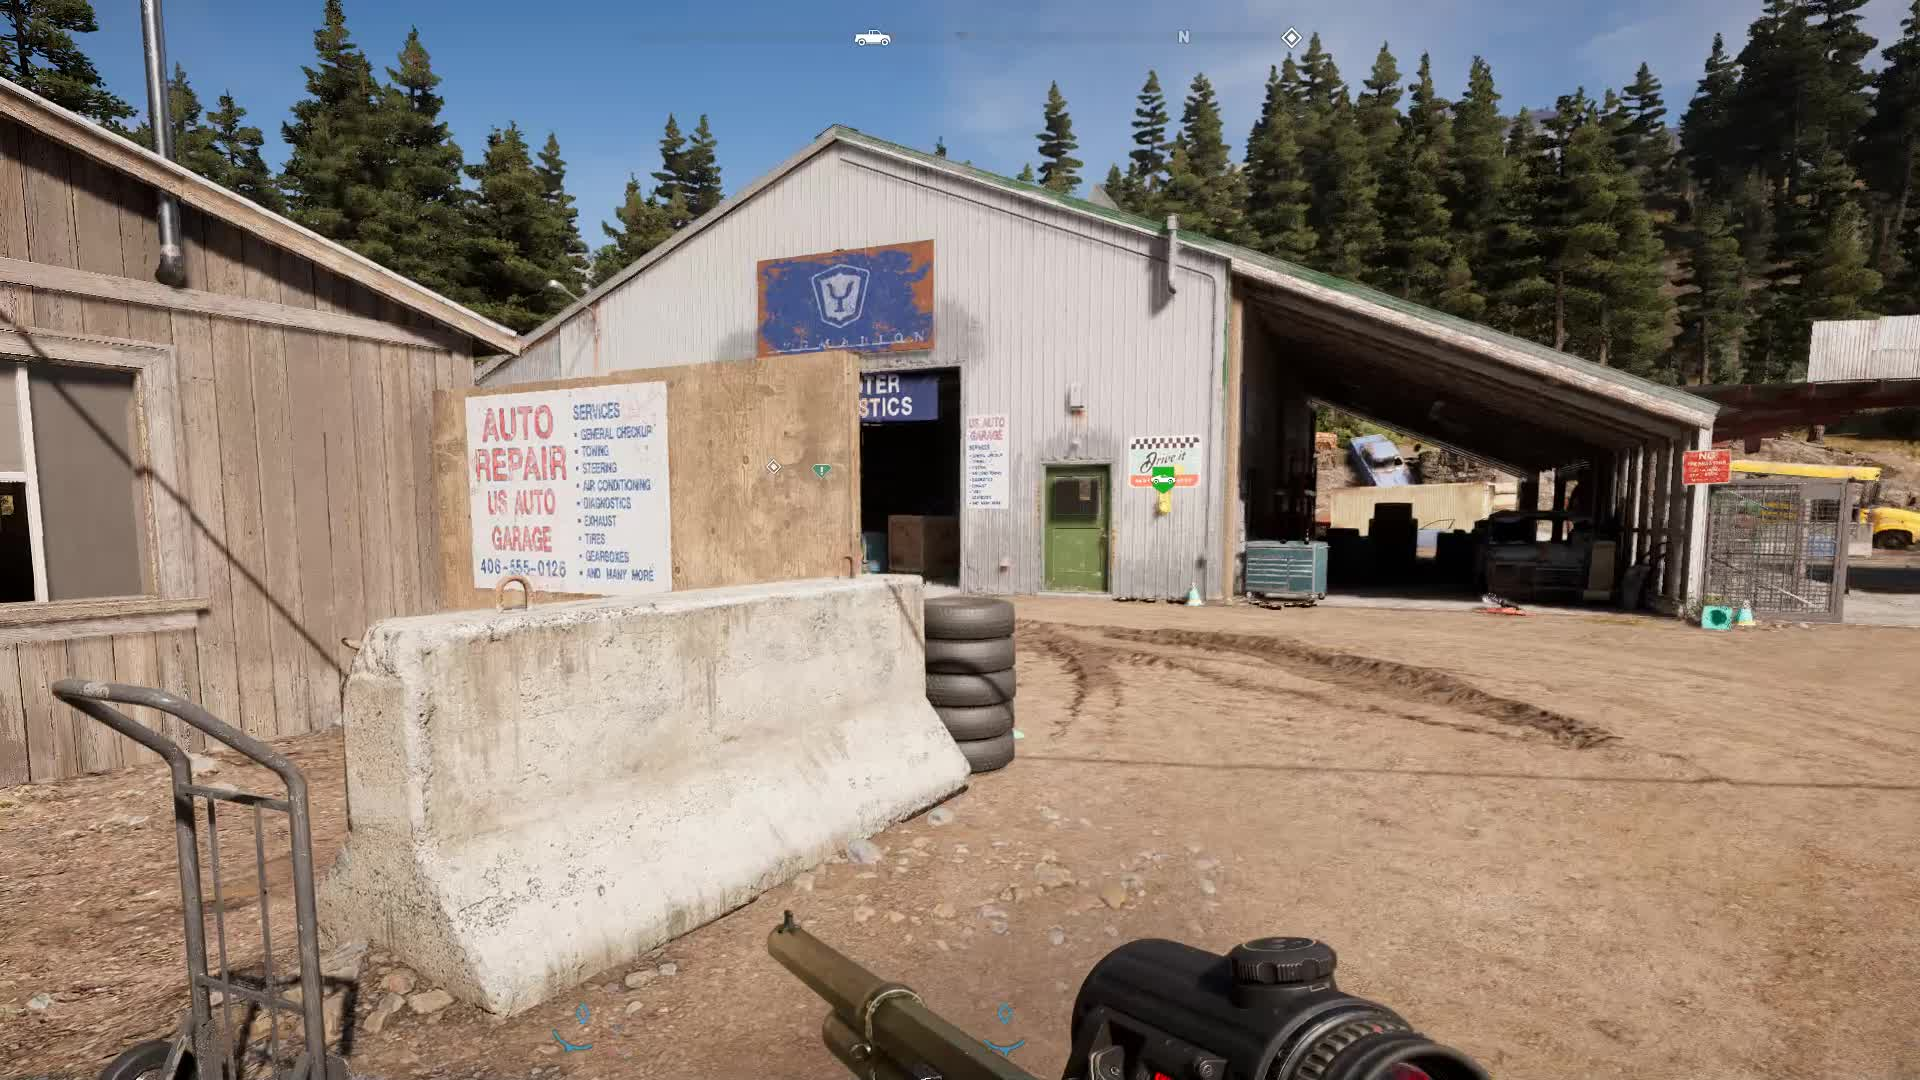 Far Cry 5, We're in big trouble GIFs